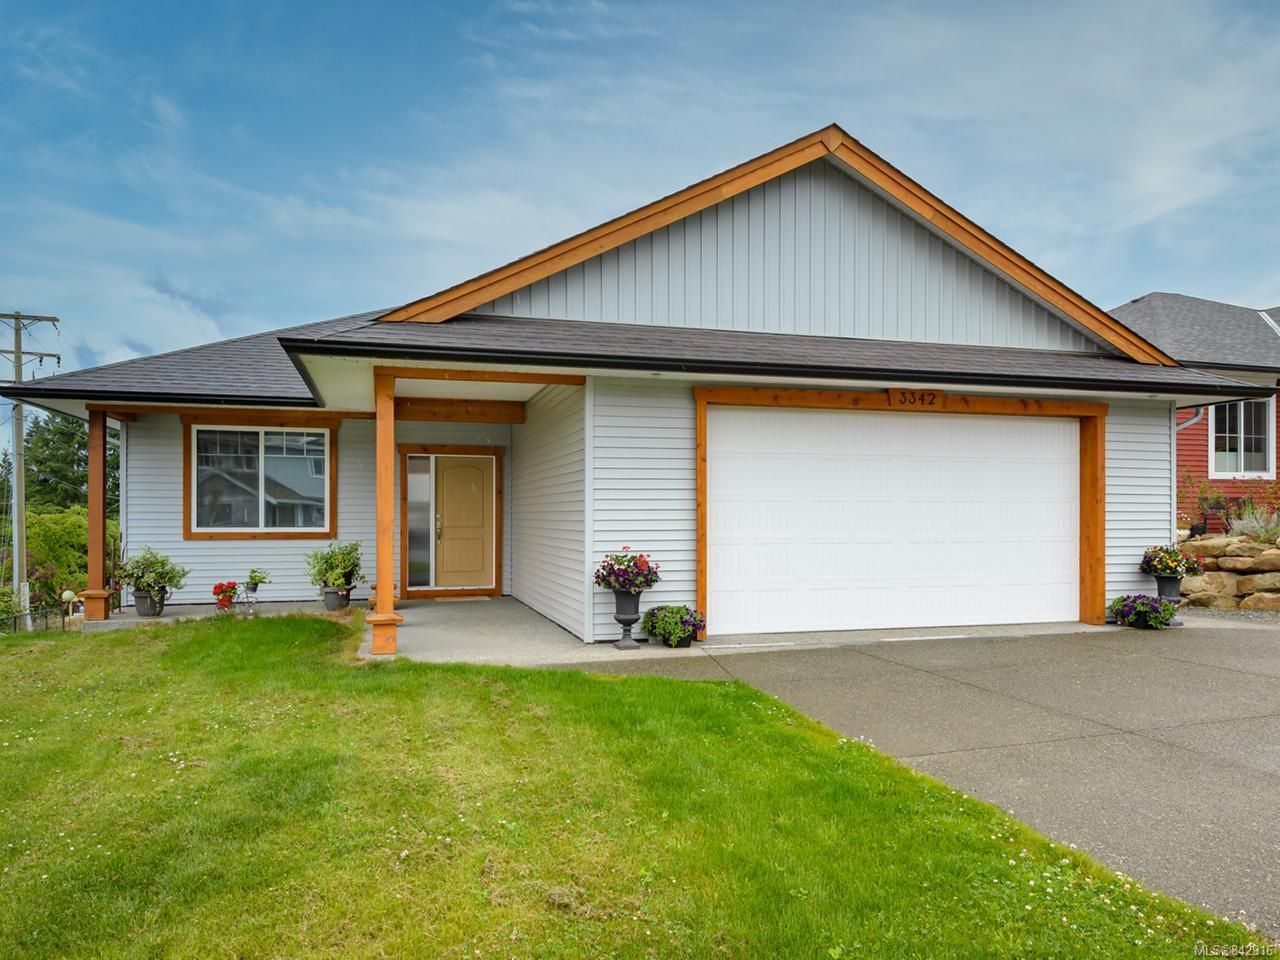 Main Photo: 3342 Solport St in CUMBERLAND: CV Cumberland House for sale (Comox Valley)  : MLS®# 842916